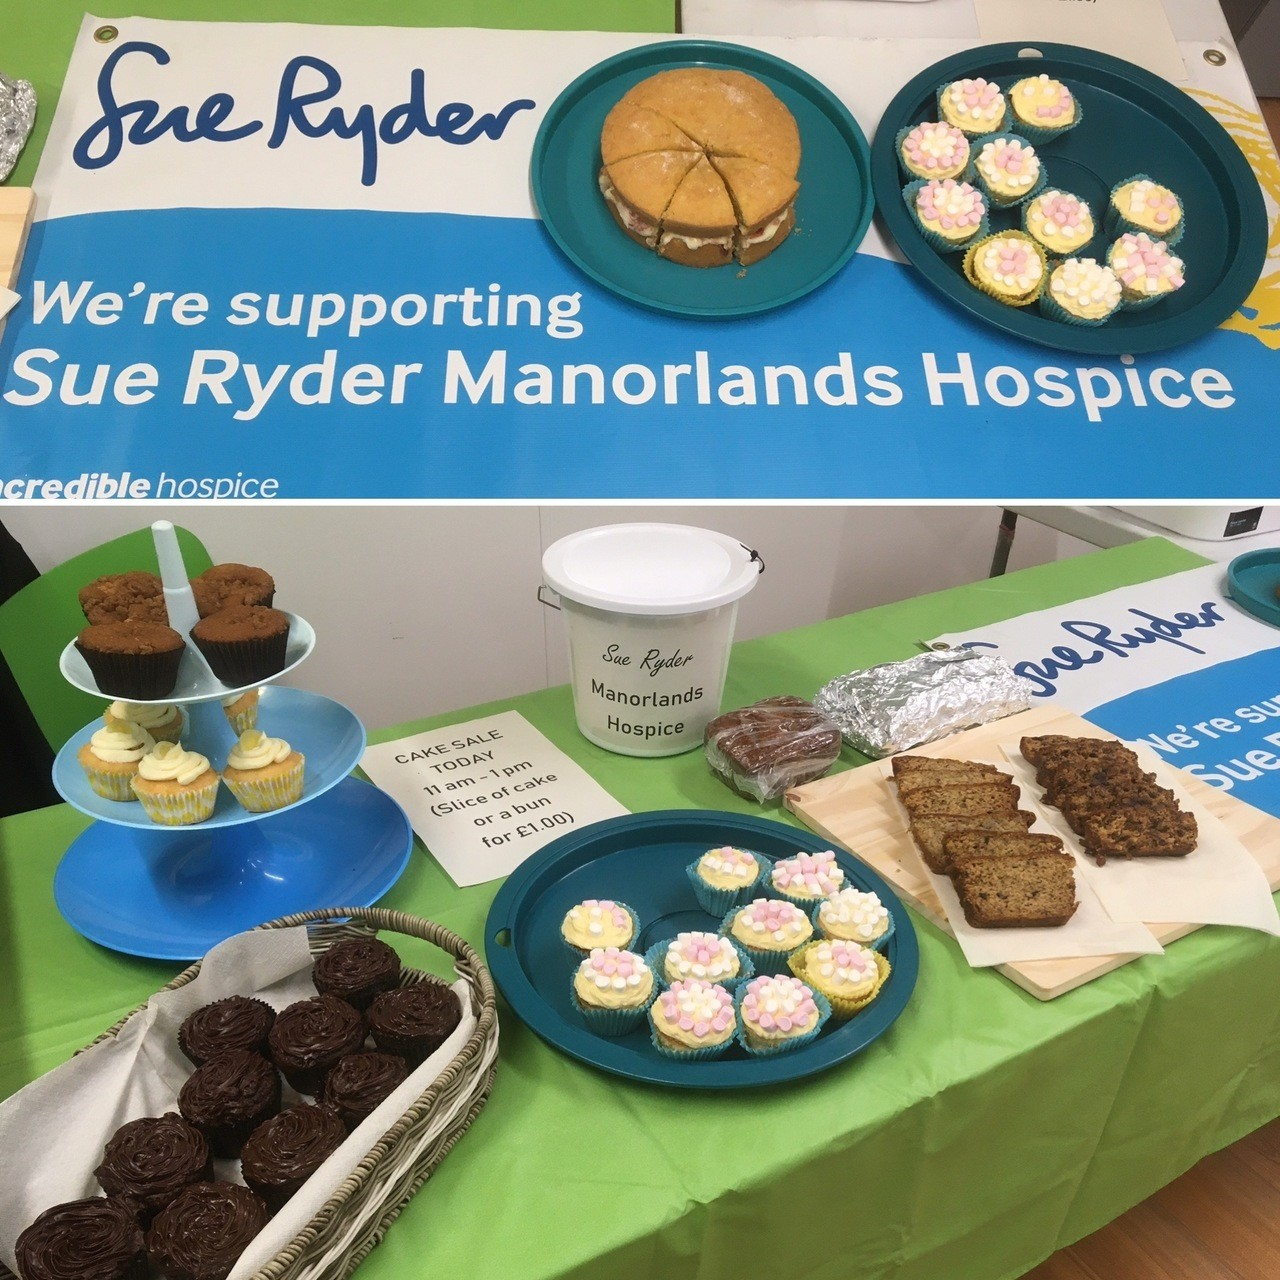 Asda Keighley had a cake sale in our colleague canteen for our local Manorlands Hospice - we raised just under £50 🧁 🍰  | Asda Keighley